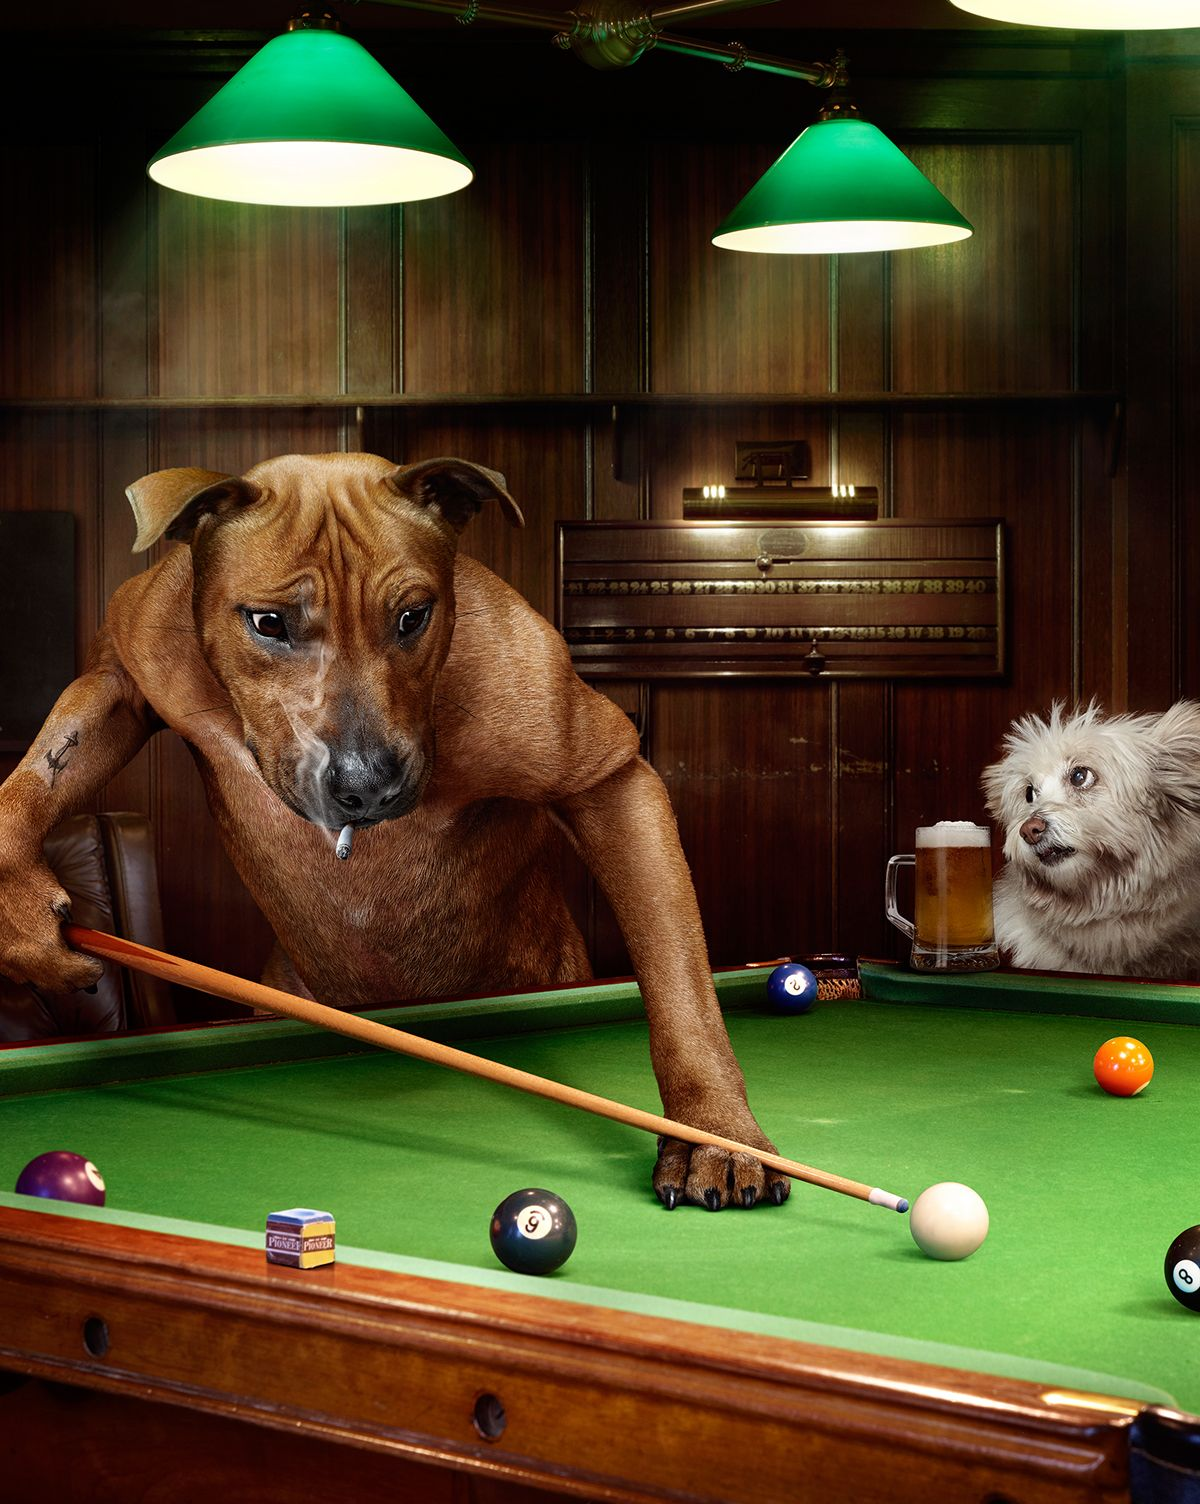 Sydney Cats & Dogs Home on Behance Perros jugando